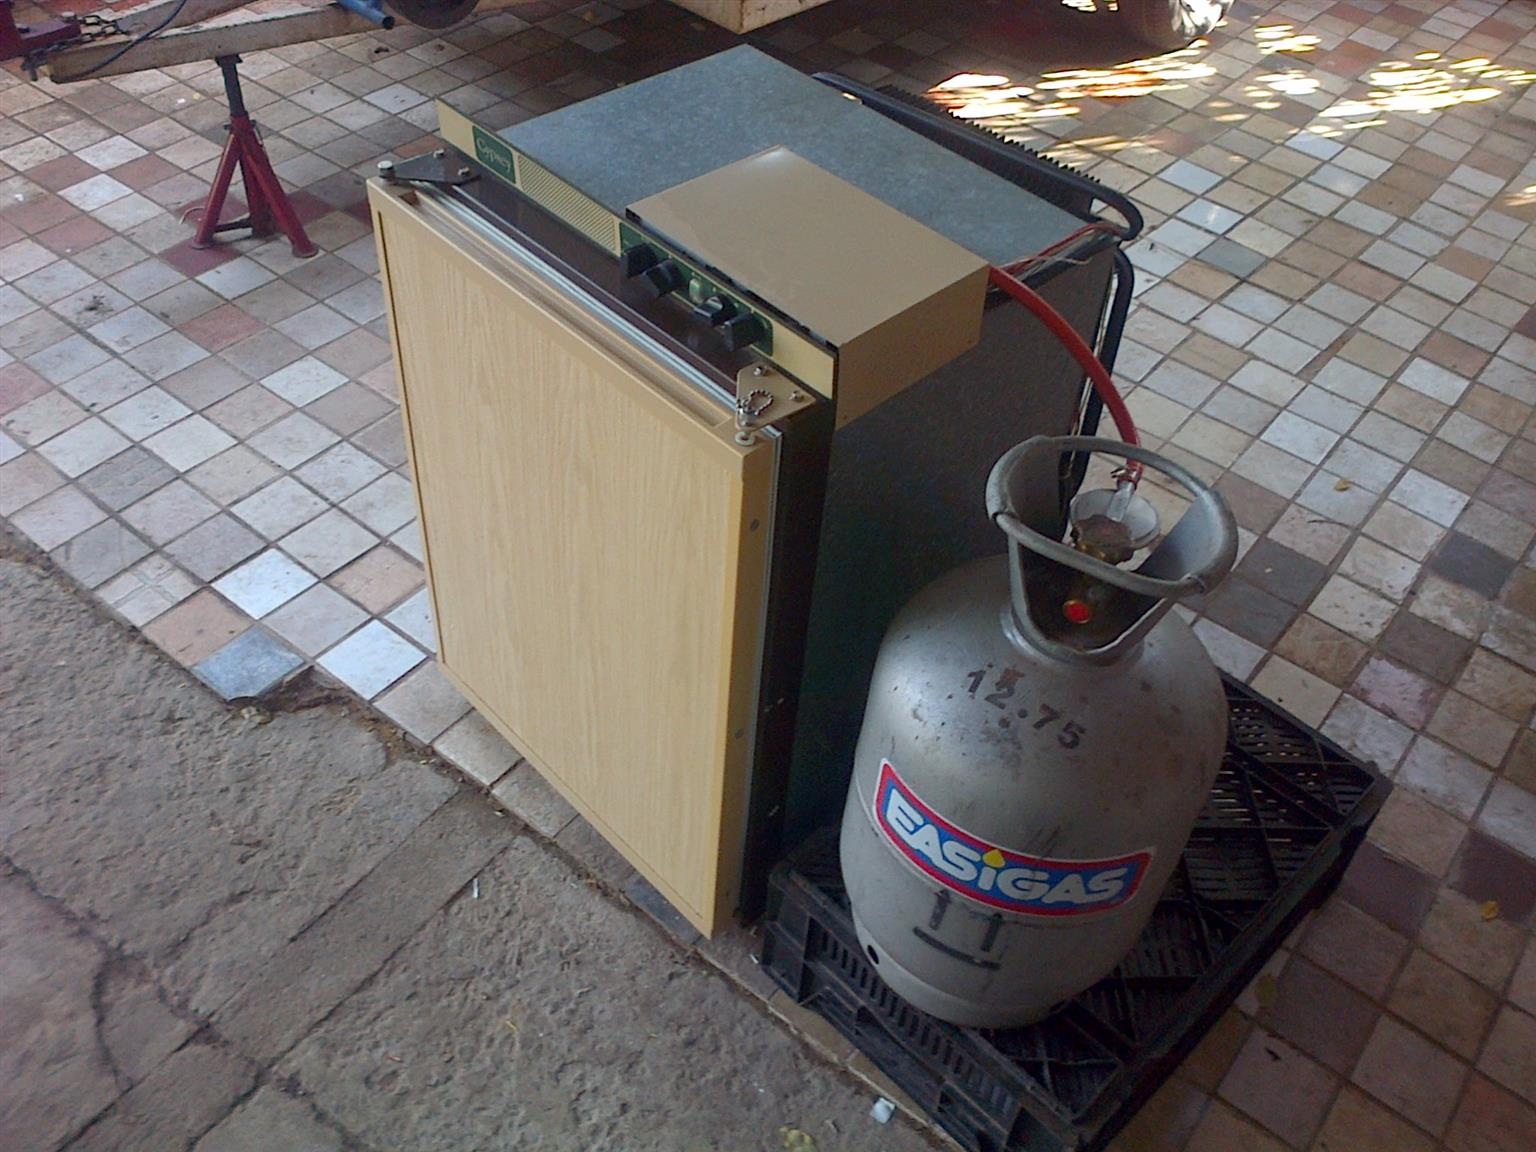 3 Way (12v/220v/gas) caravan or camping fridge with small freezer compartment inside in excellent condition and working 100% for sale - R2995 cash (including gas bottle + regulator) I CAN DELIVER for a small fee. WhatsApp/sms/call Pierre on 0825784861.